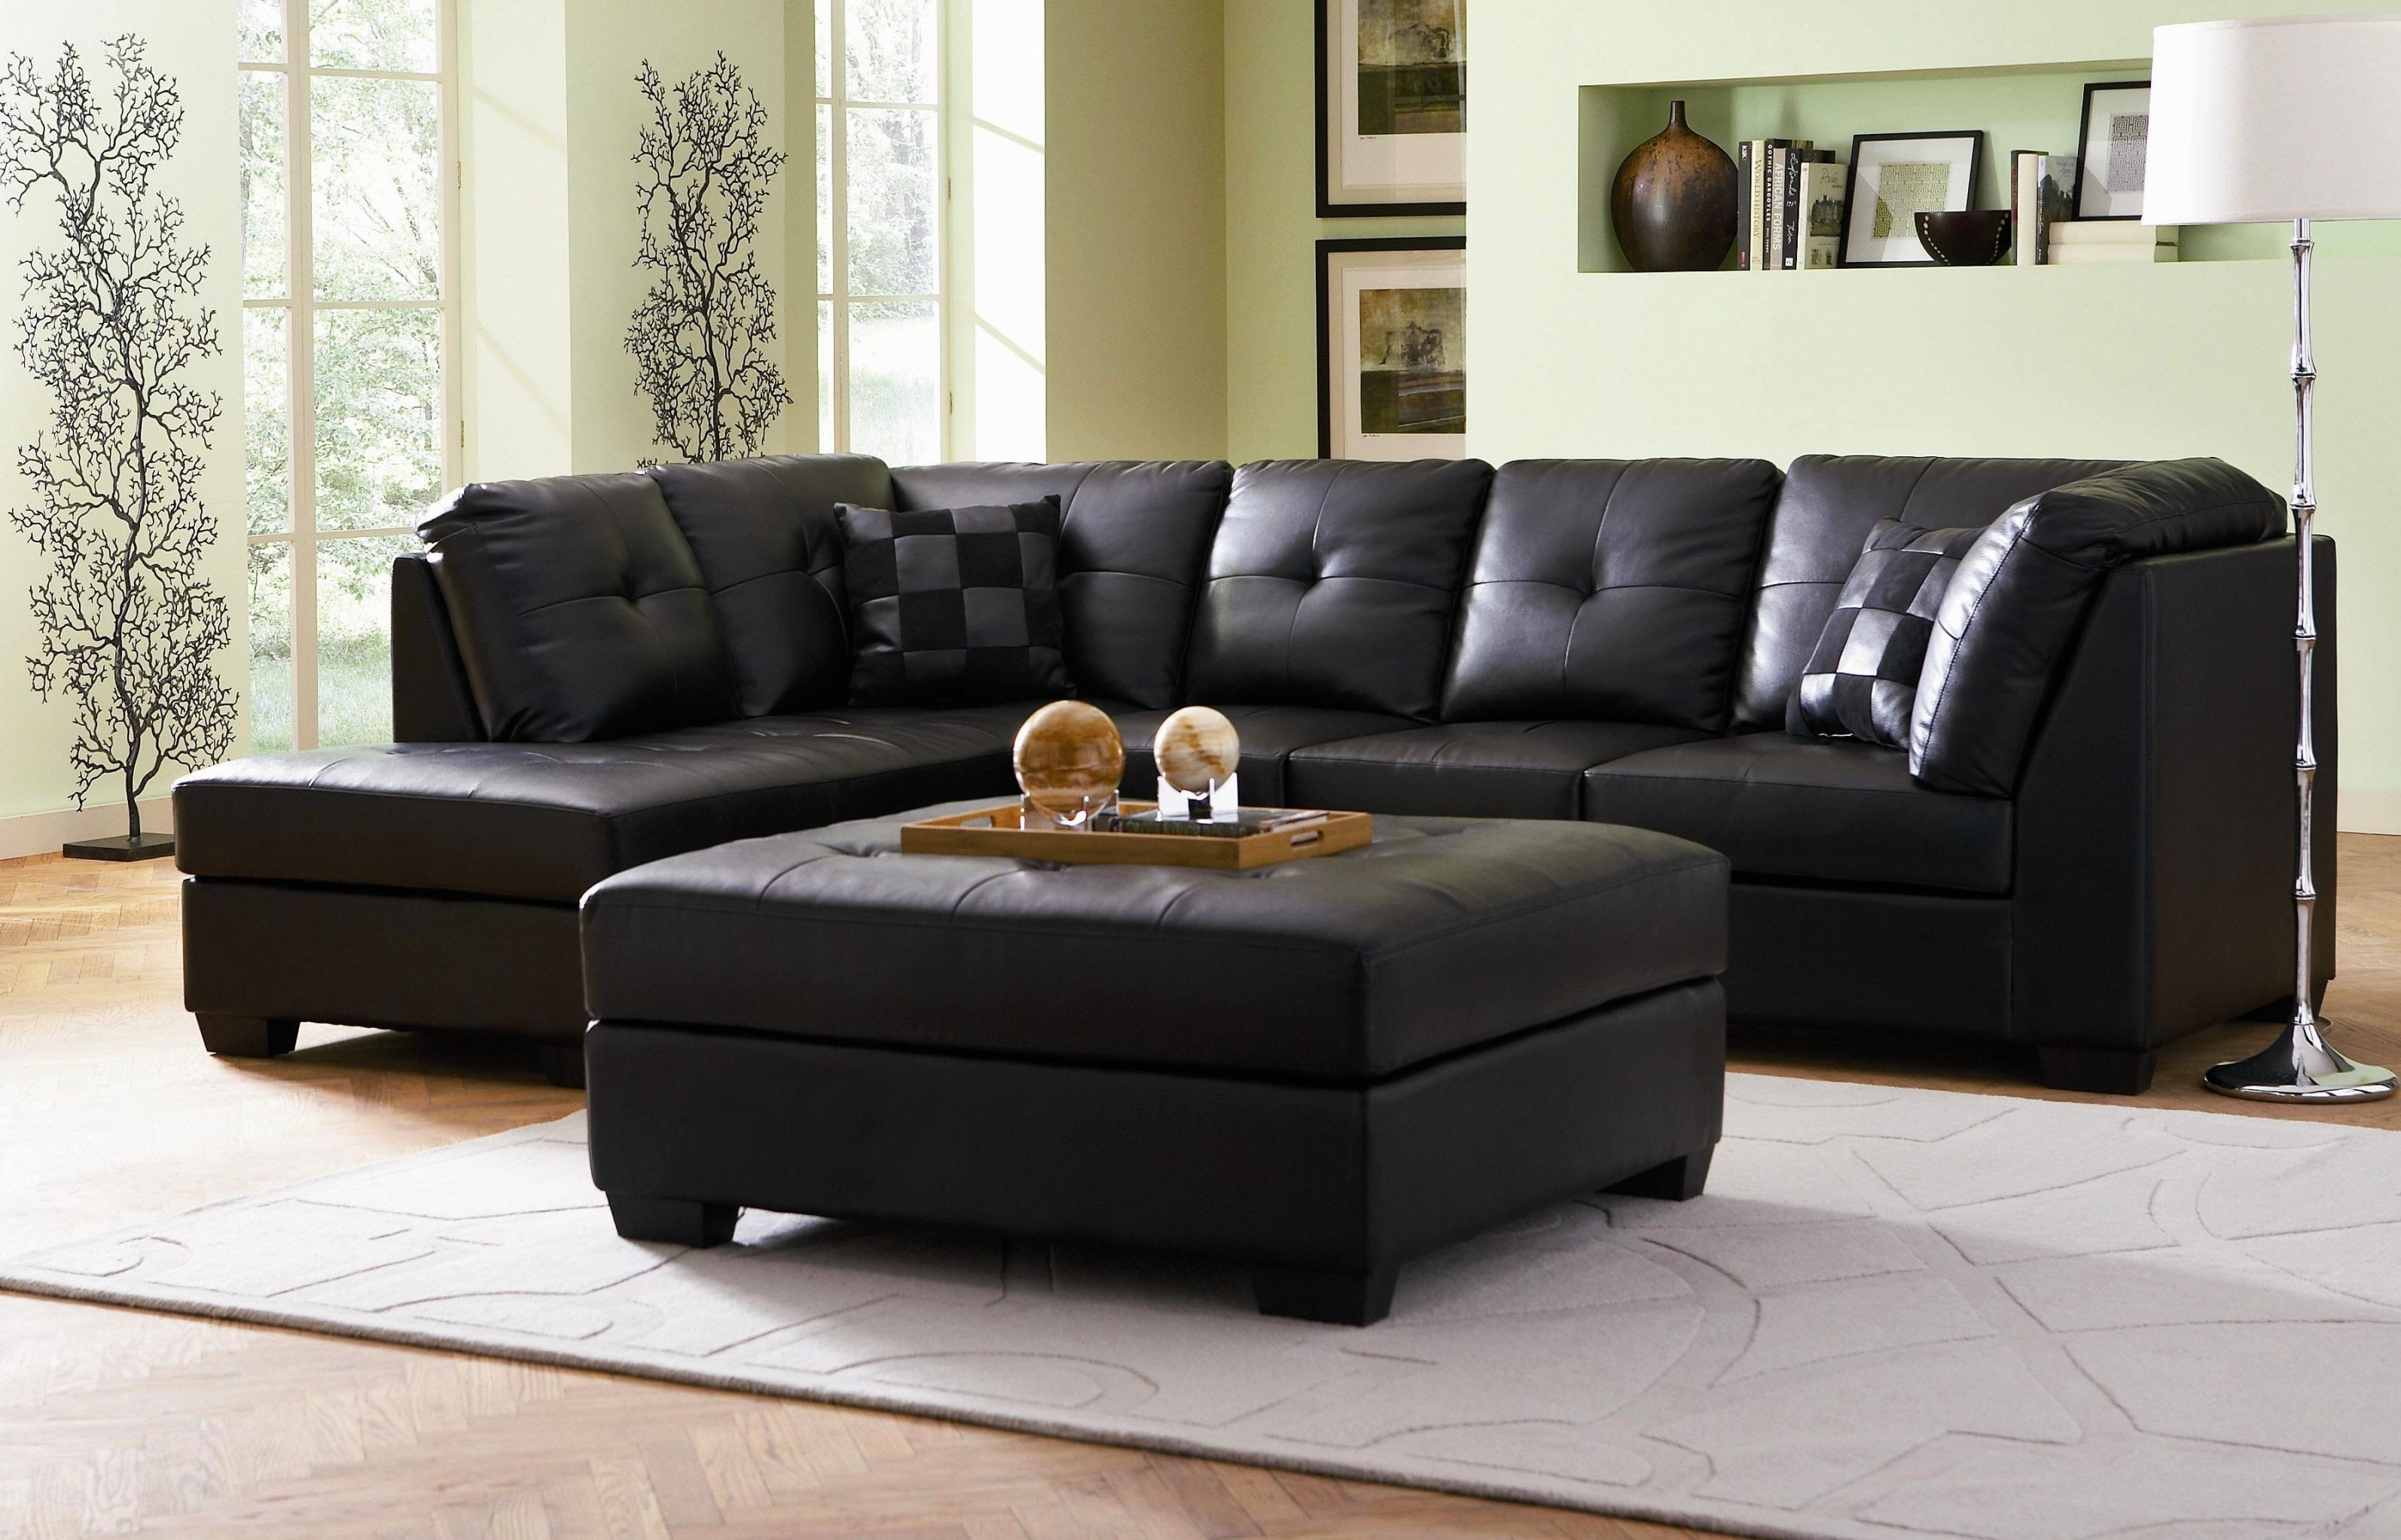 Superior Affordable Sectionals Sofas #2 Remarkable Cheap Sectional for Affordable Sectional Sofas (Image 13 of 15)